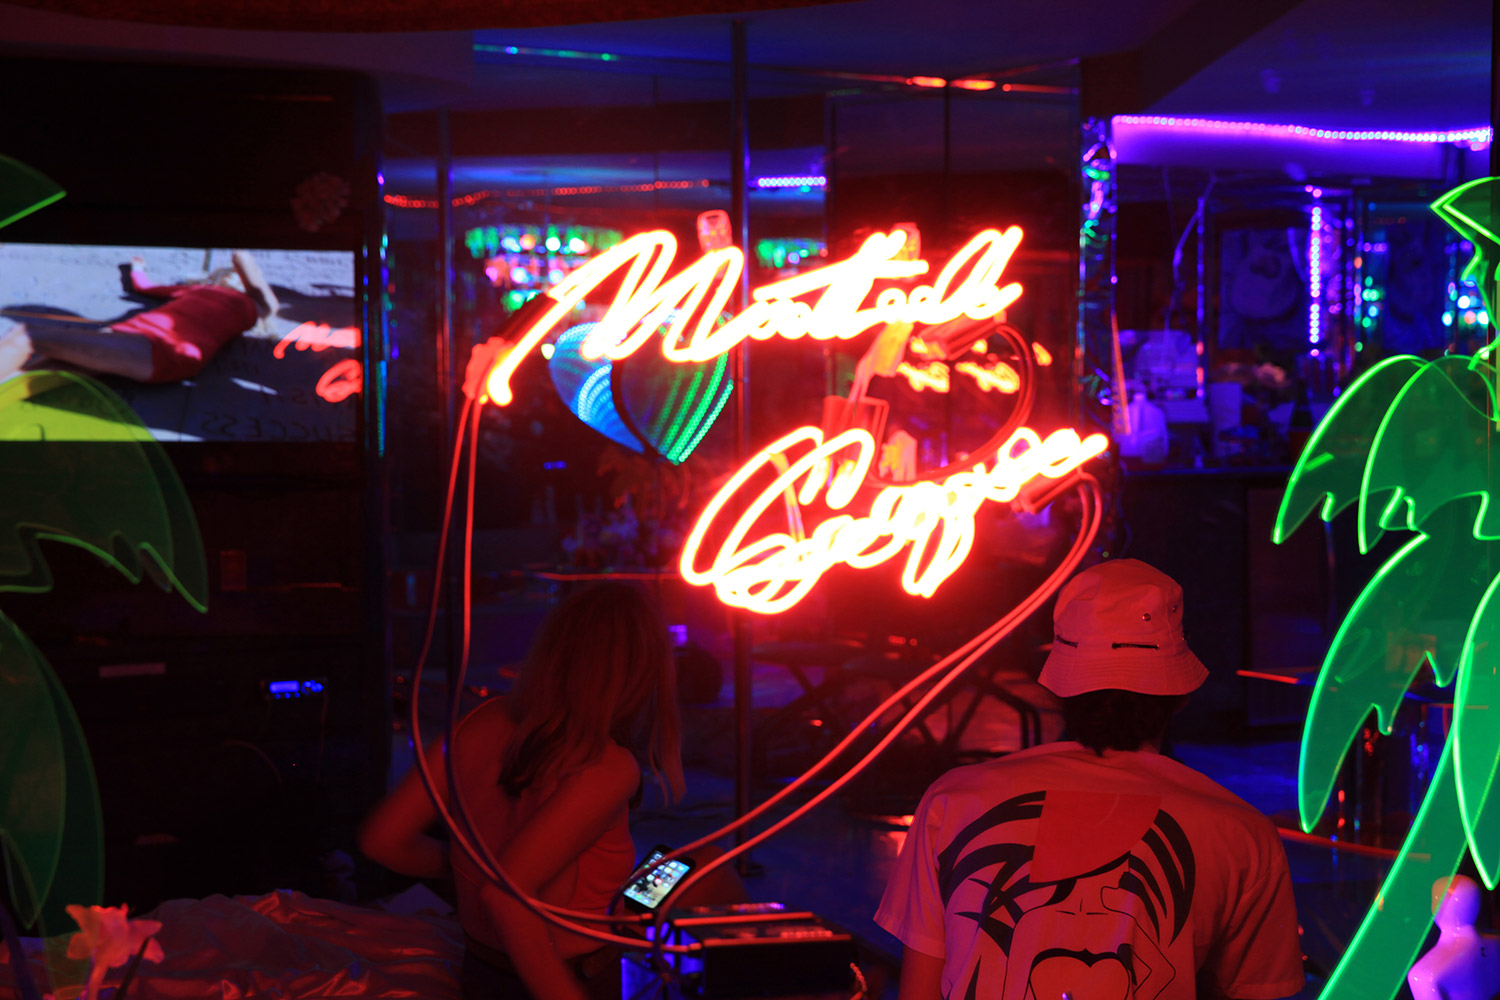 Marina Fini and Signe Pierce, Motelscape - motel neon sign